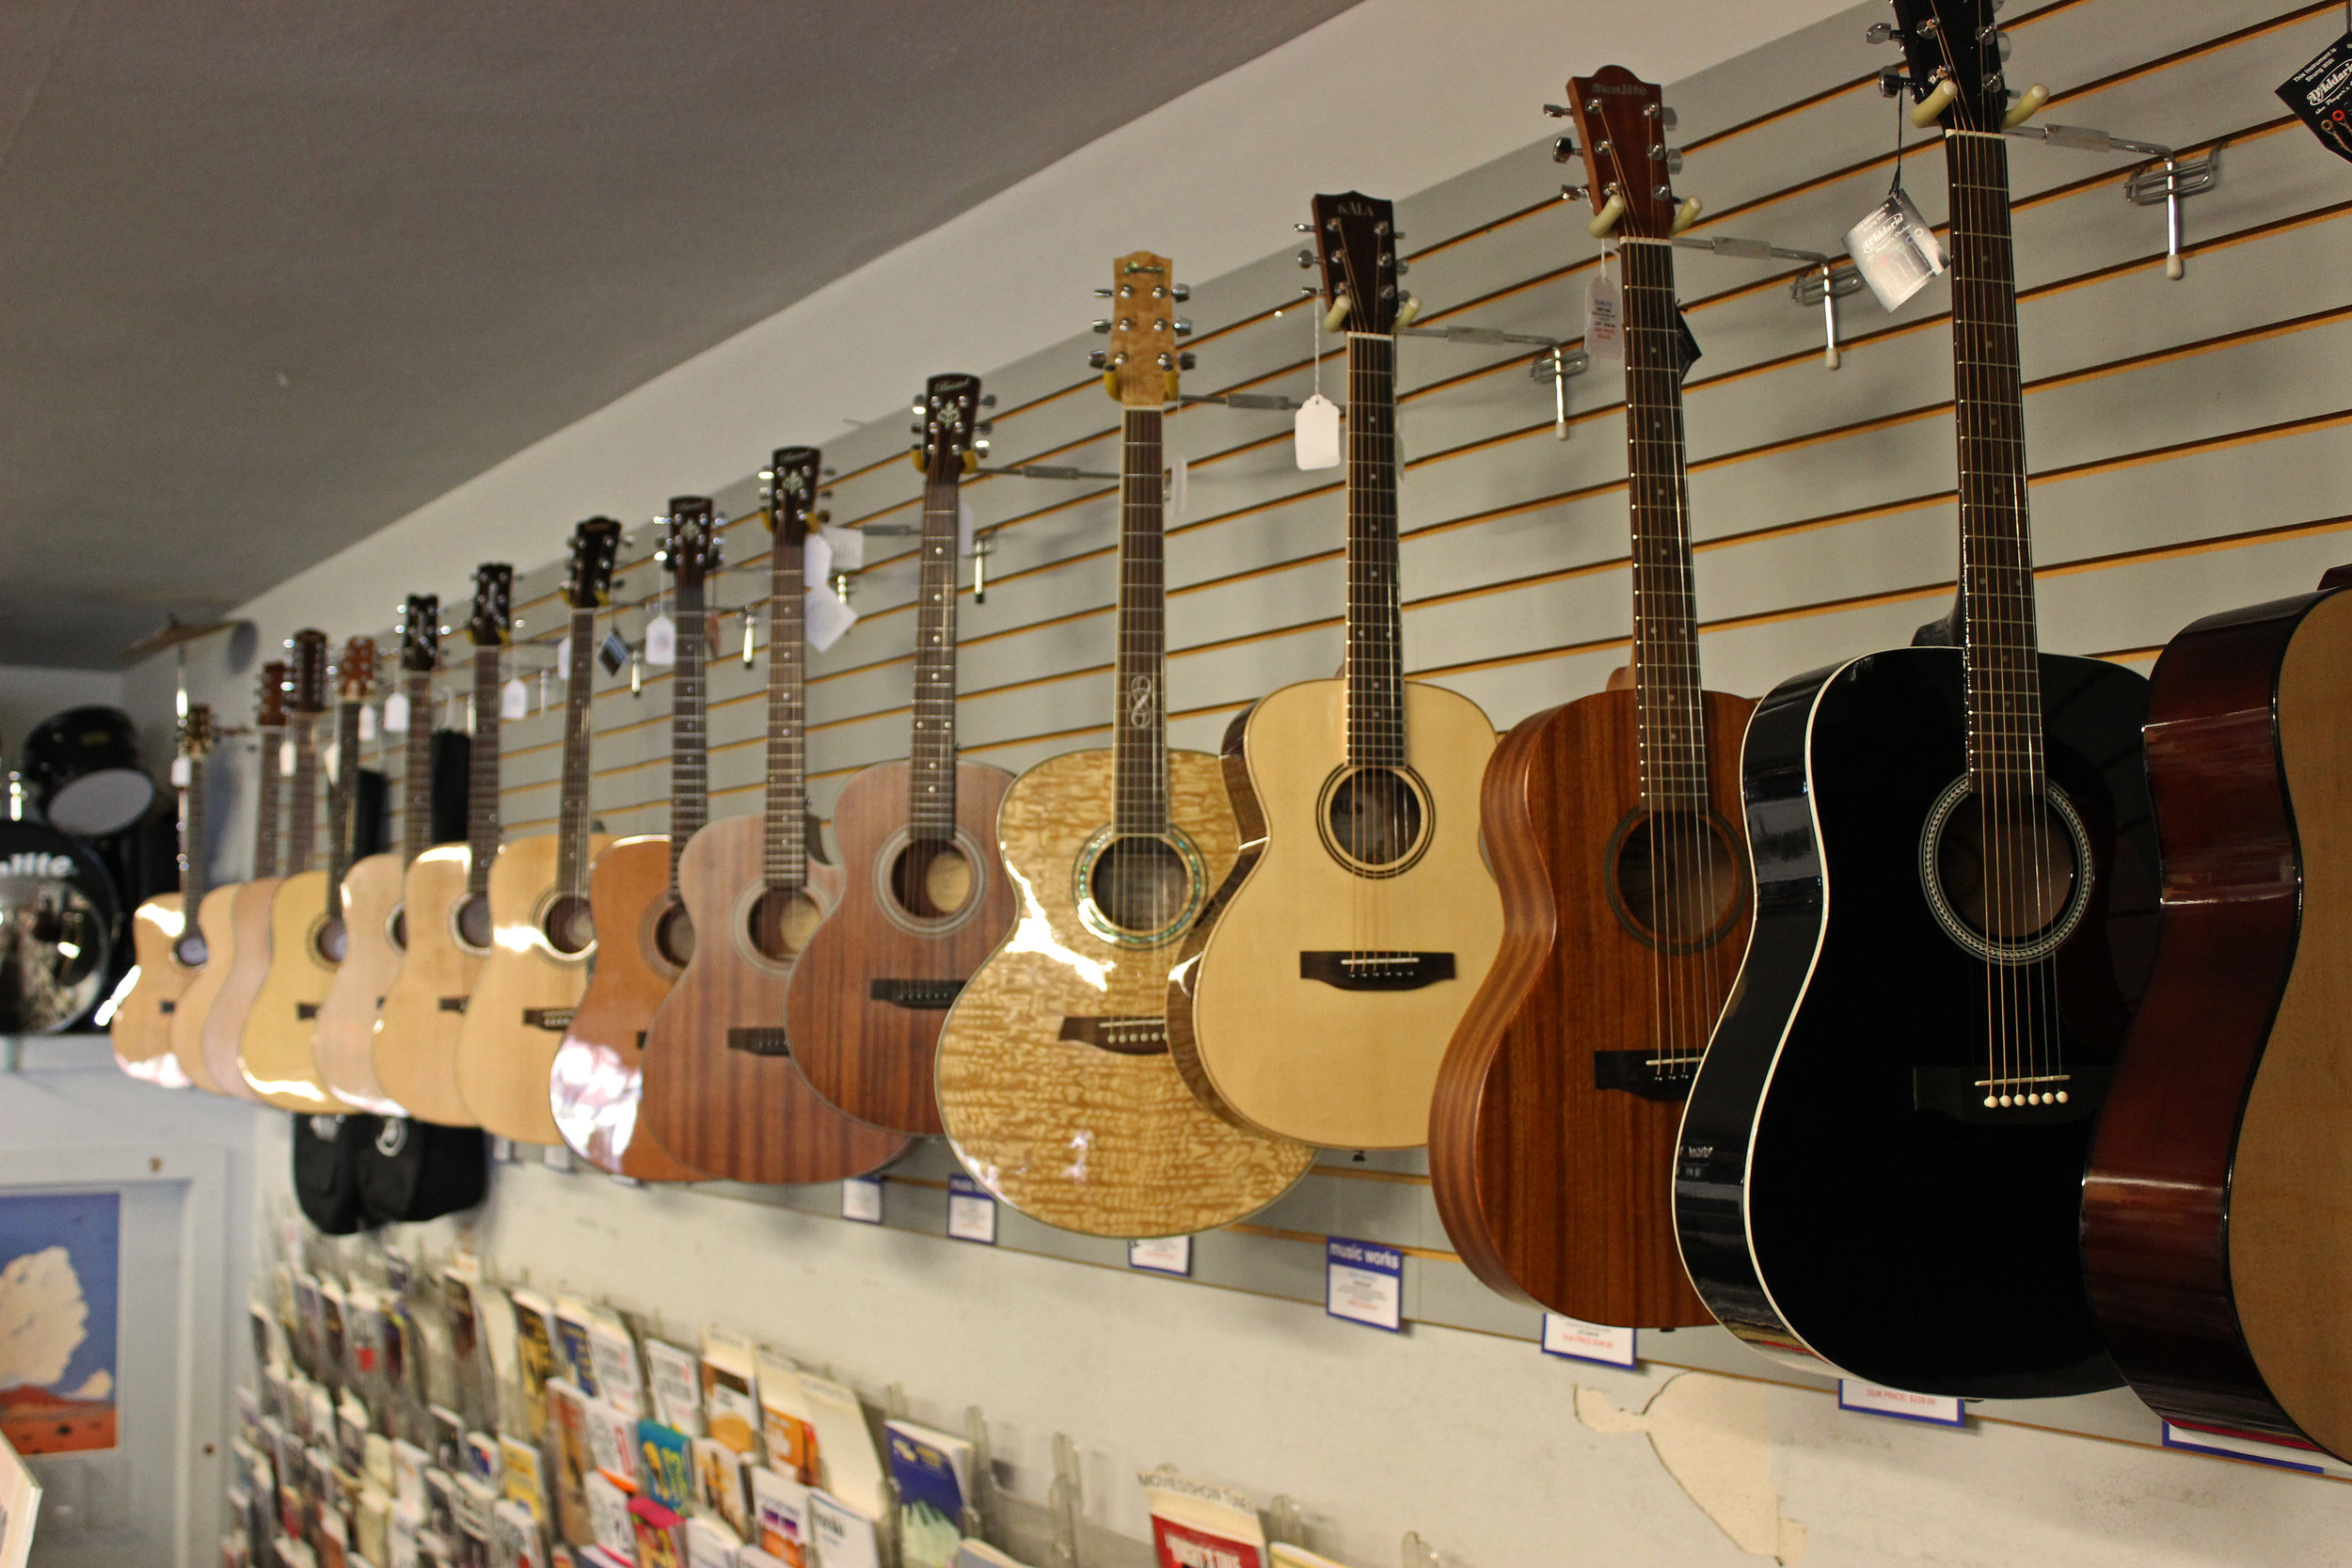 Acoustic guitars  Our far wall is lined with Parlor, Orchestra, Grand Concert and many Dreadnaught sized acoustics.